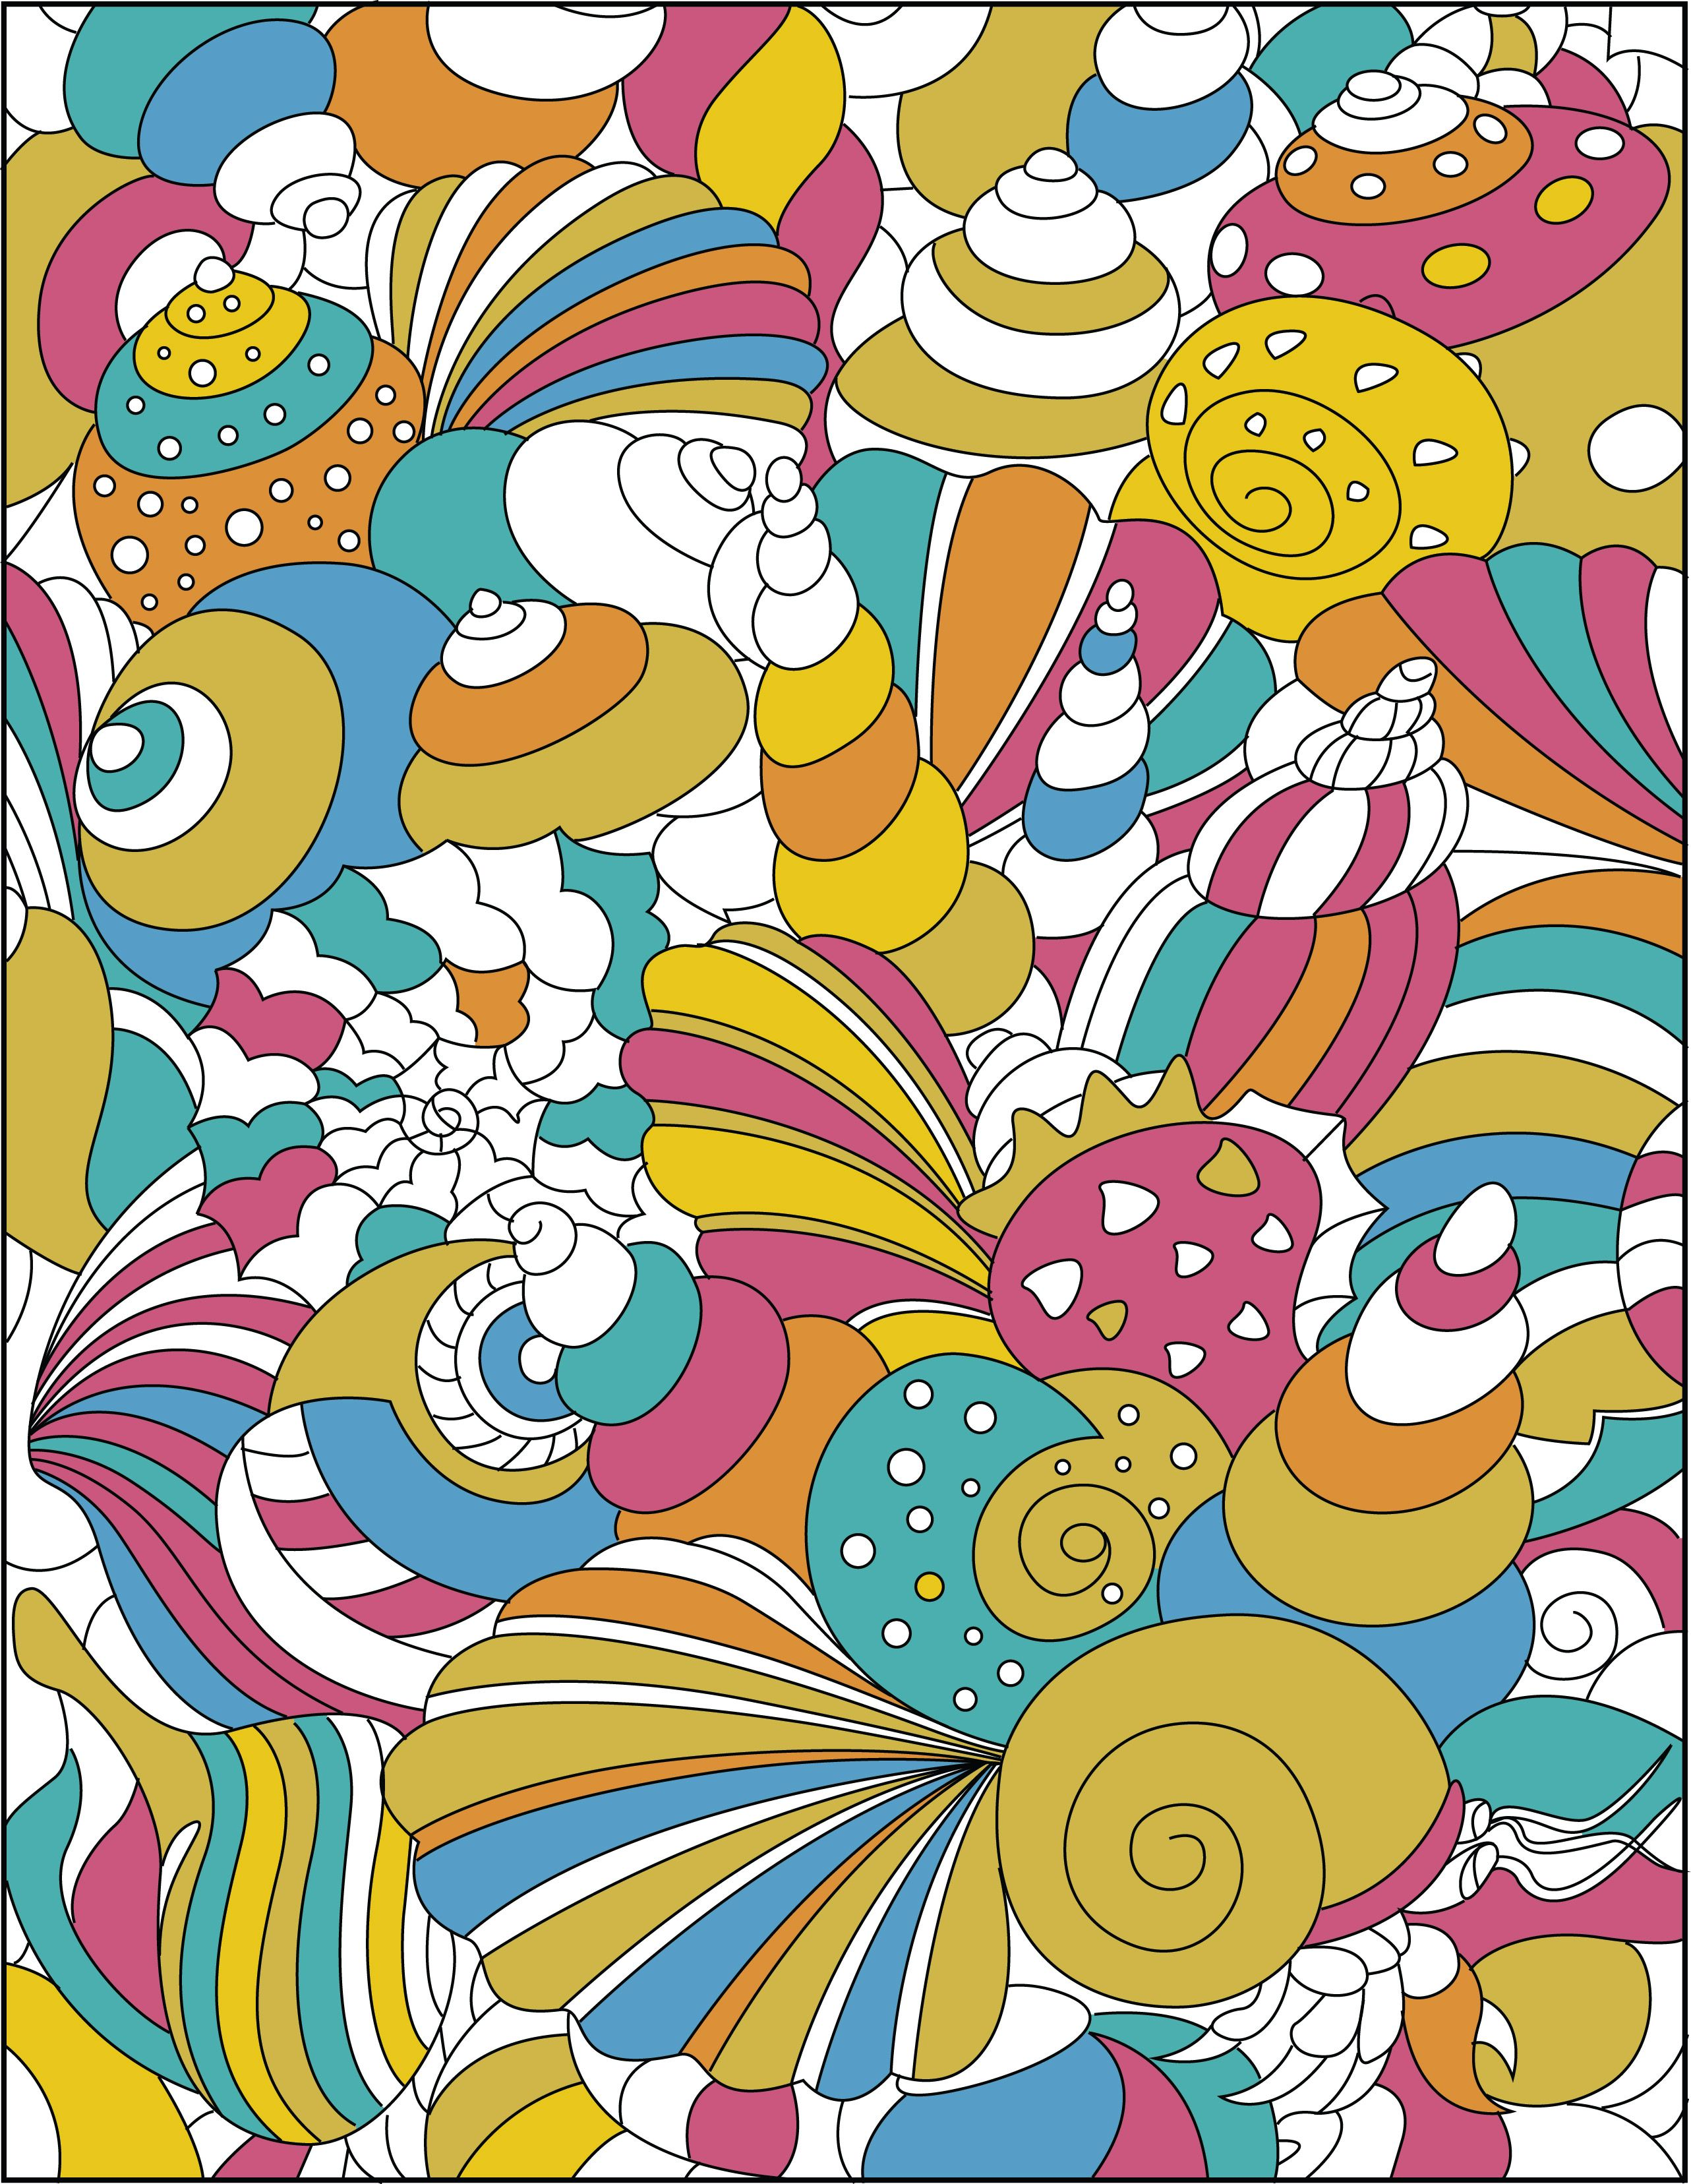 The coloring book of cards and envelopes flowers and butterflies - Shells From Creatively Calm Studios Geometric Shapes An Adult Coloring Book